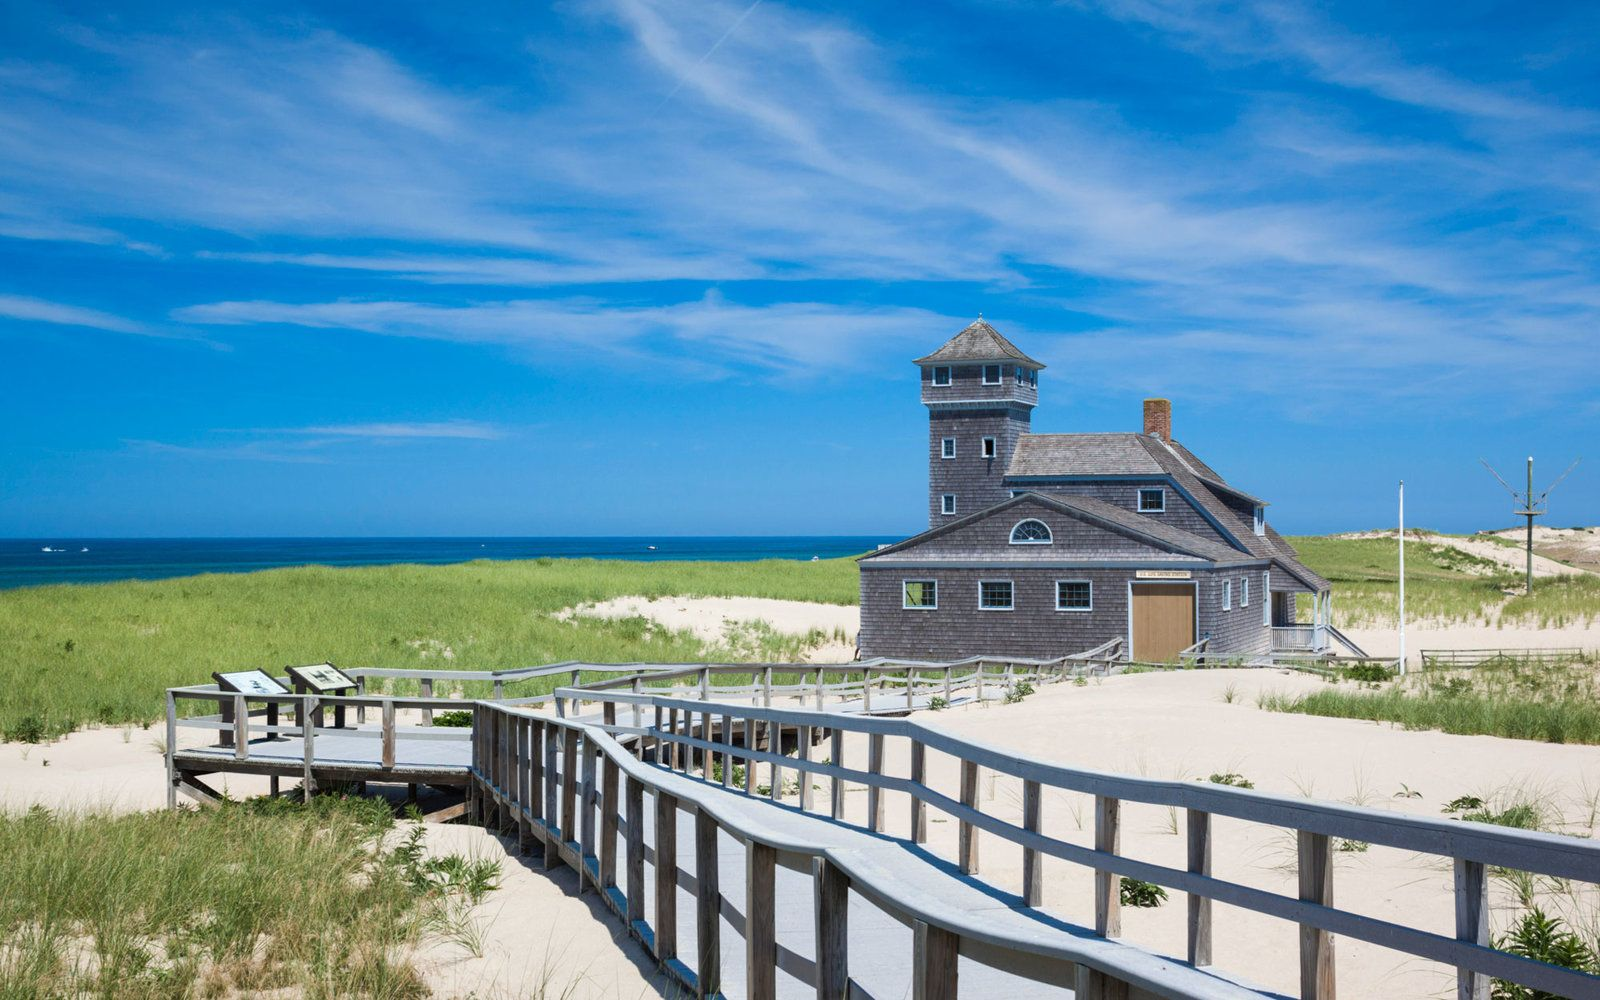 13 Ways to Perfect Your Next Trip to Cape Cod